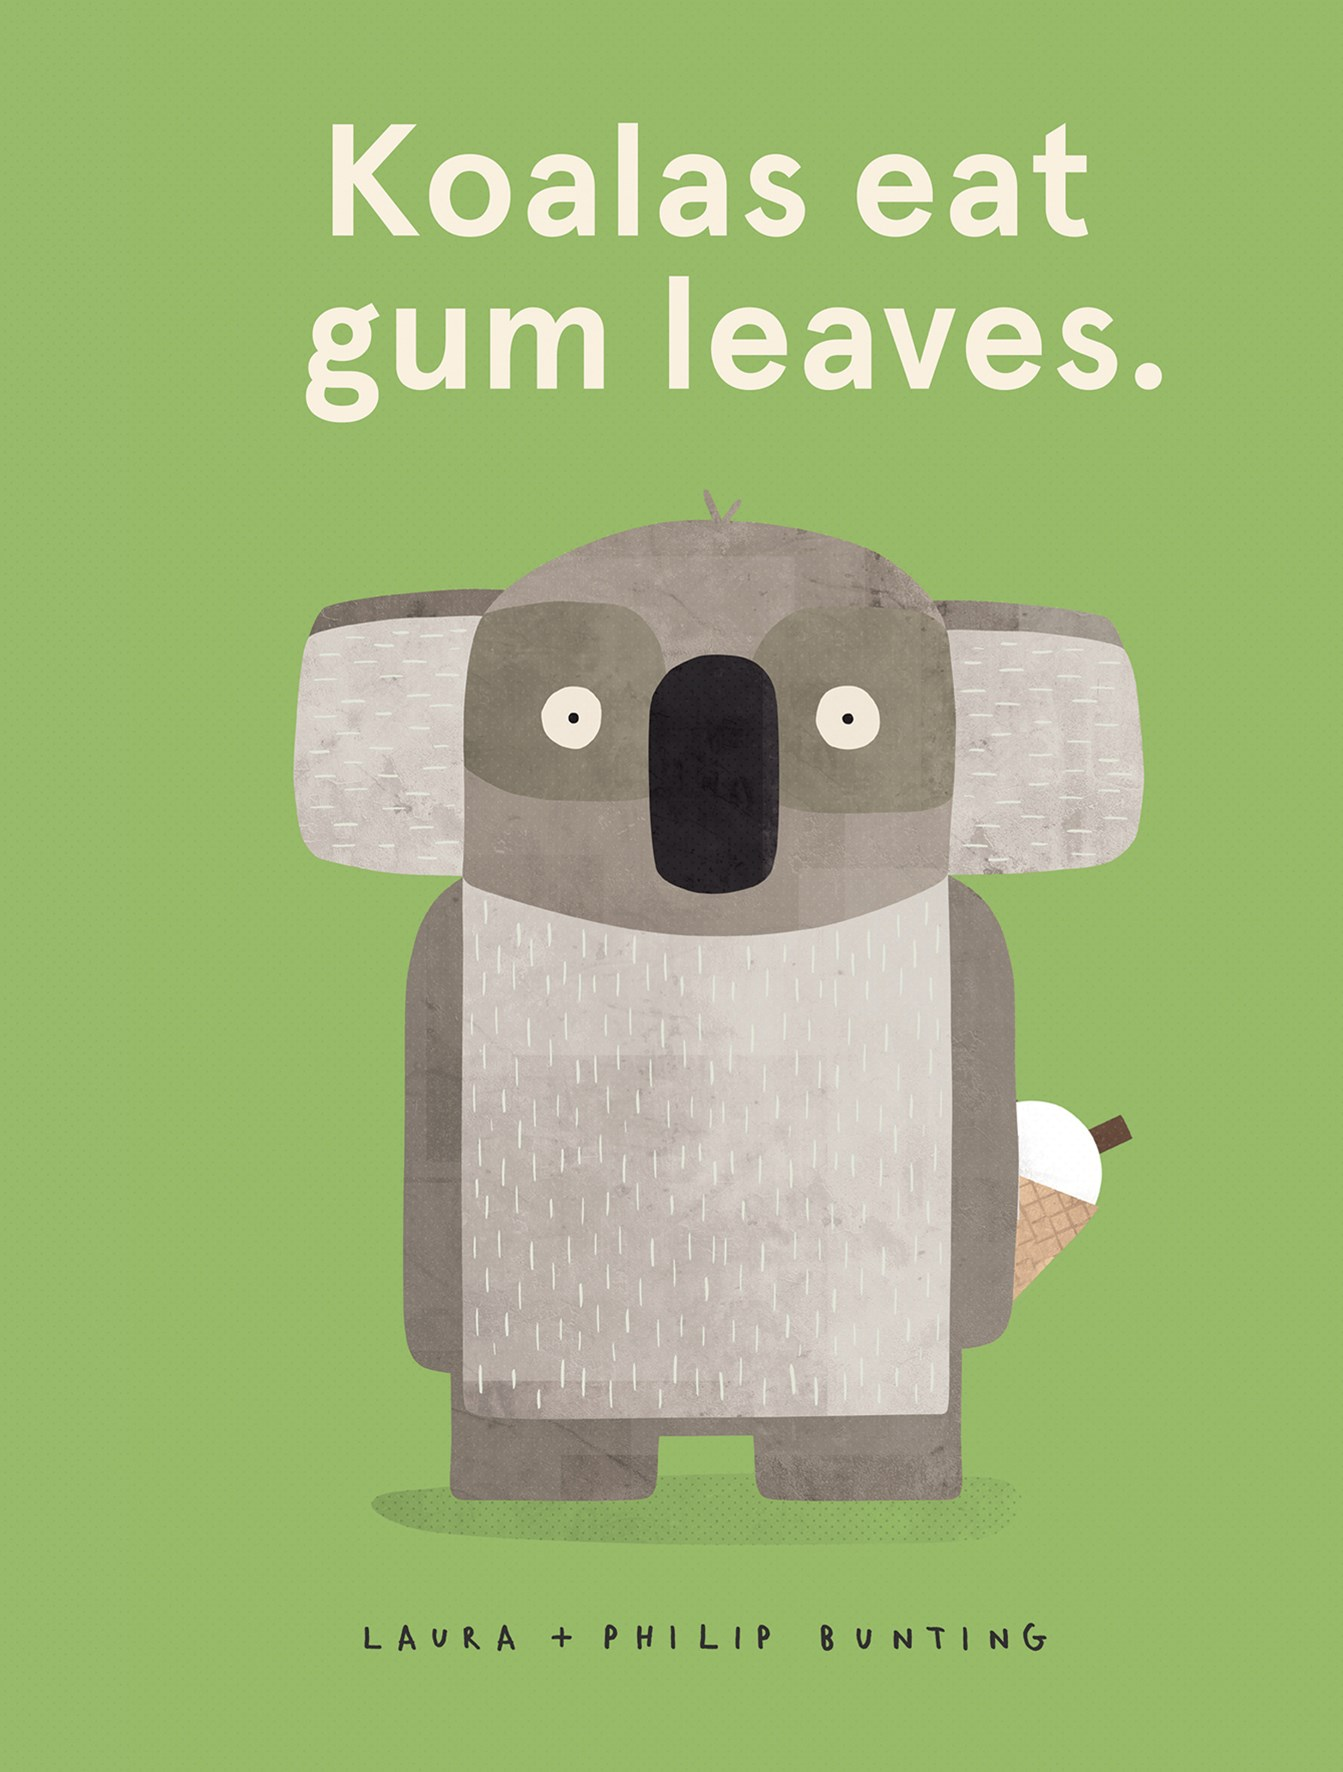 Koalas Eat Gum Leaves